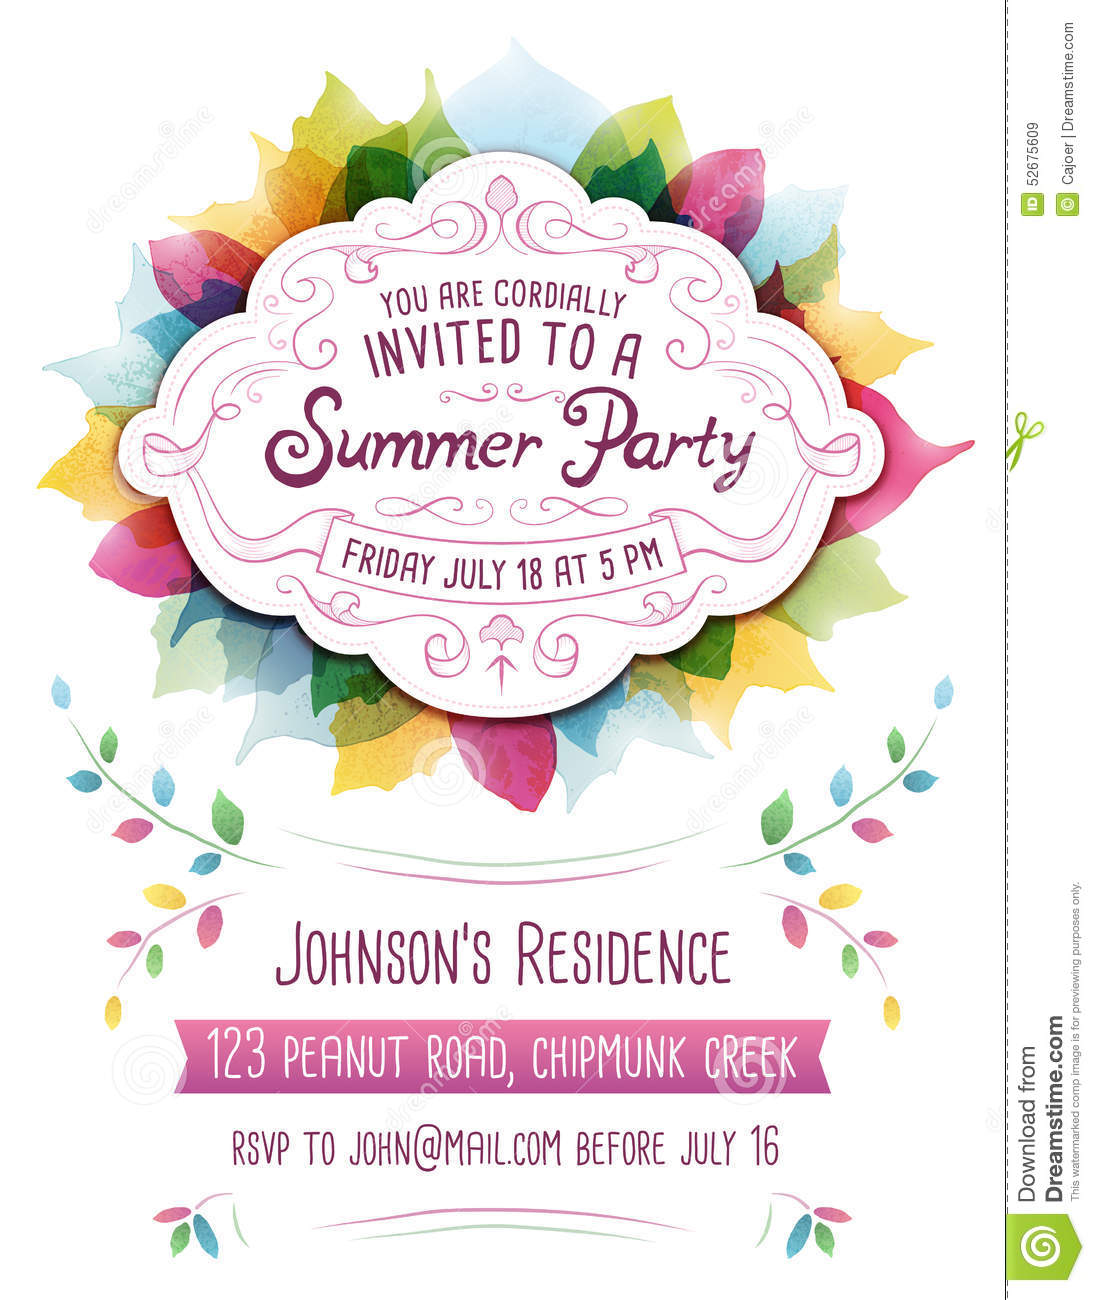 Ornament party invitations - Summer Party Invitation